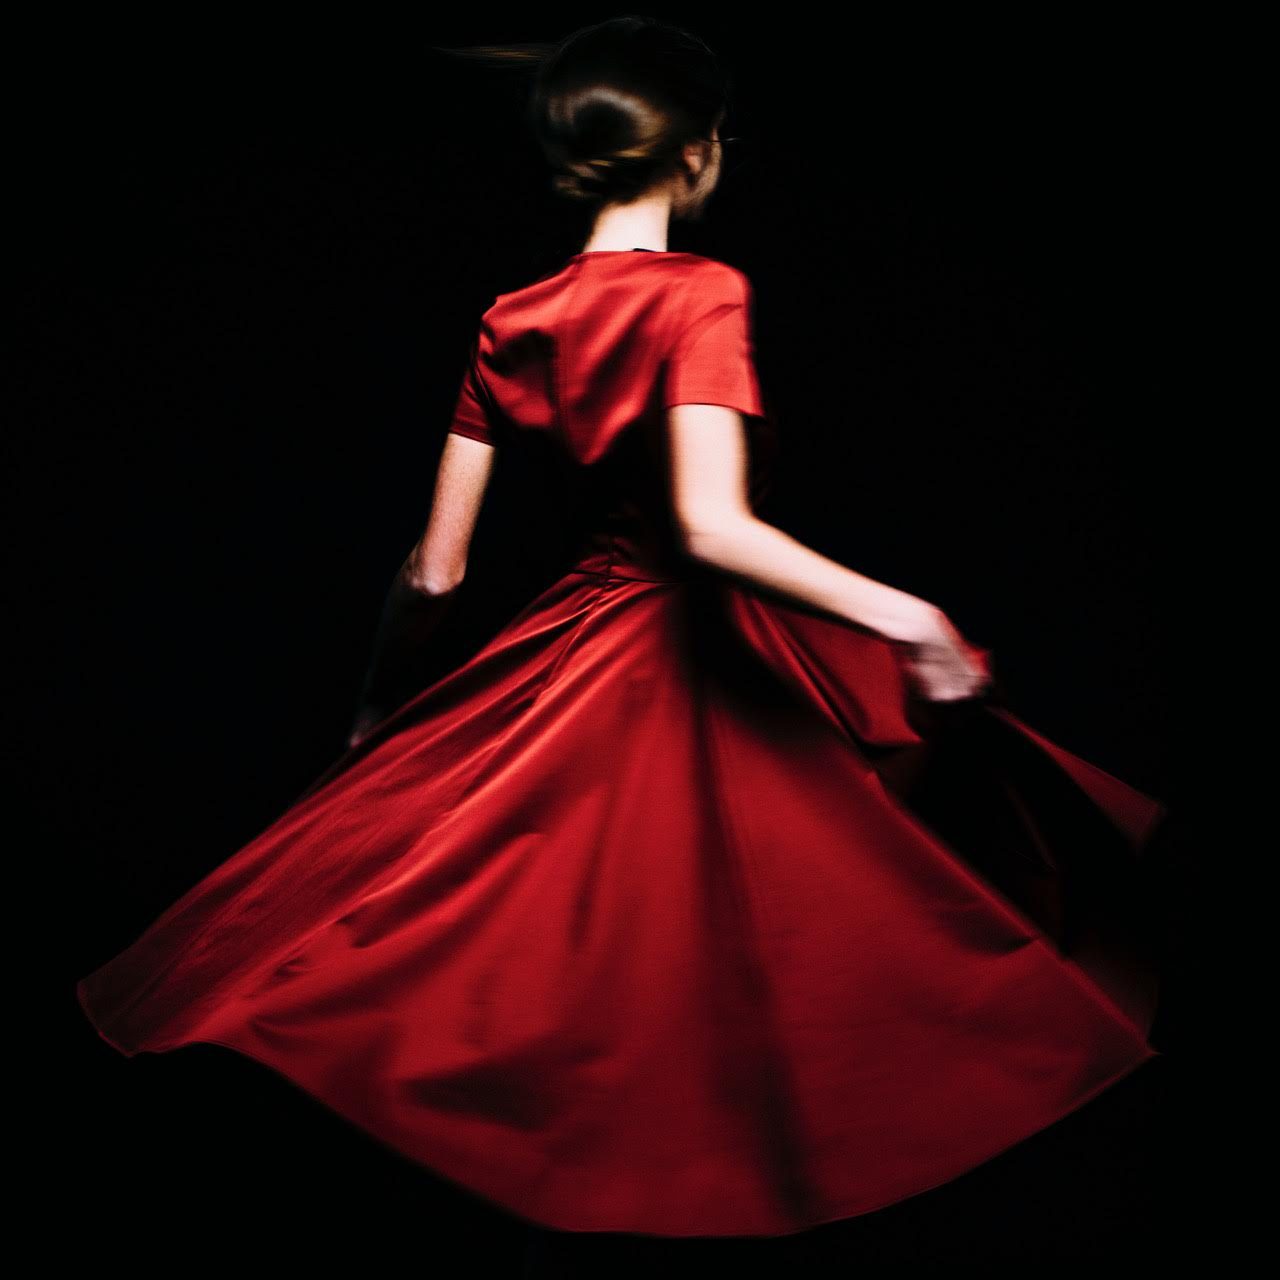 marco onofri le fille rouge